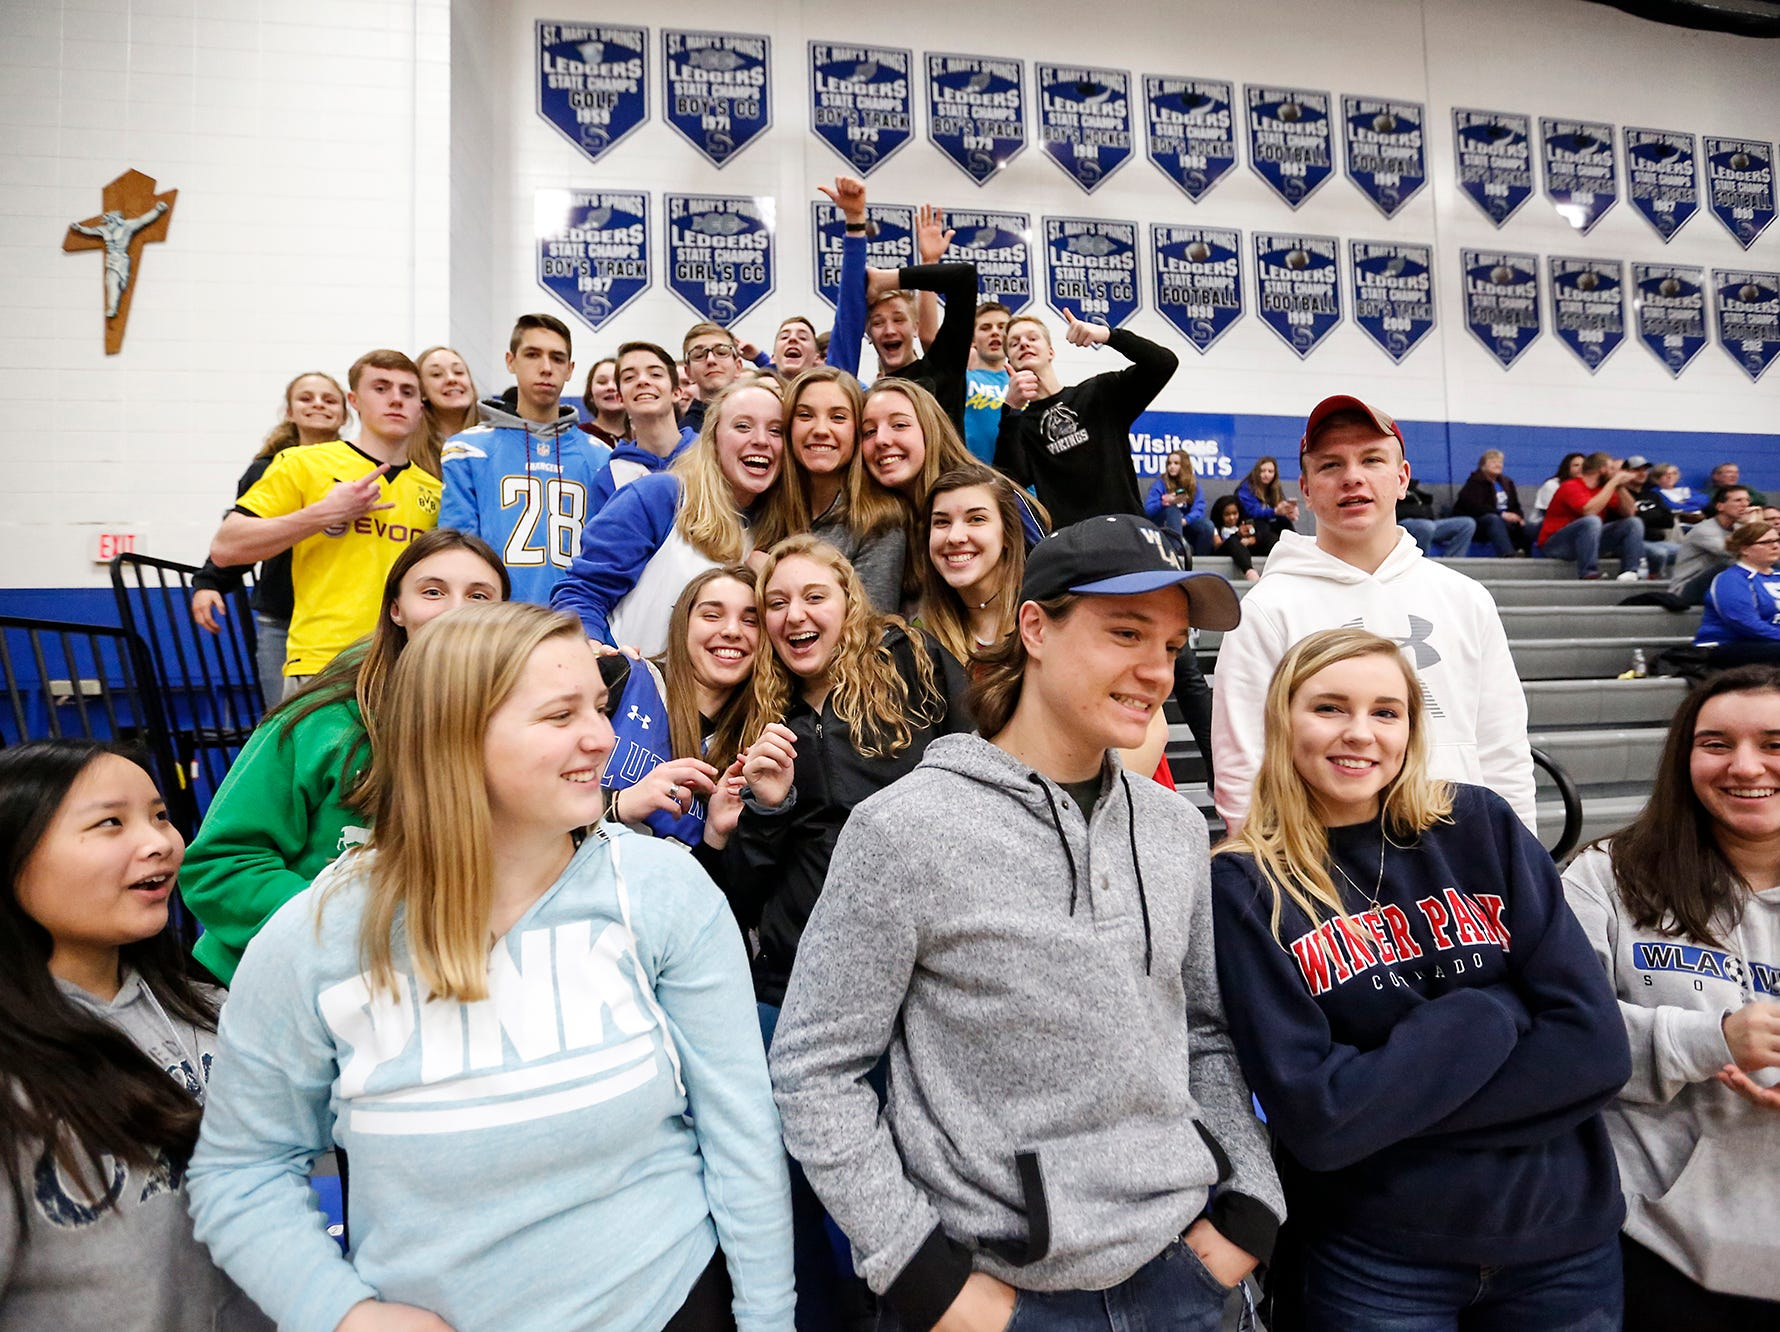 Winnebago Lutheran Academy boys basketball fans pose for a photo during a game against St Mary's Springs Academy Thursday, February 21, 2019 in Fond du Lac, Wisconsin. Winnebago Lutheran Academy won the game 95-86. Doug Raflik/USA TODAY NETWORK-Wisconsin